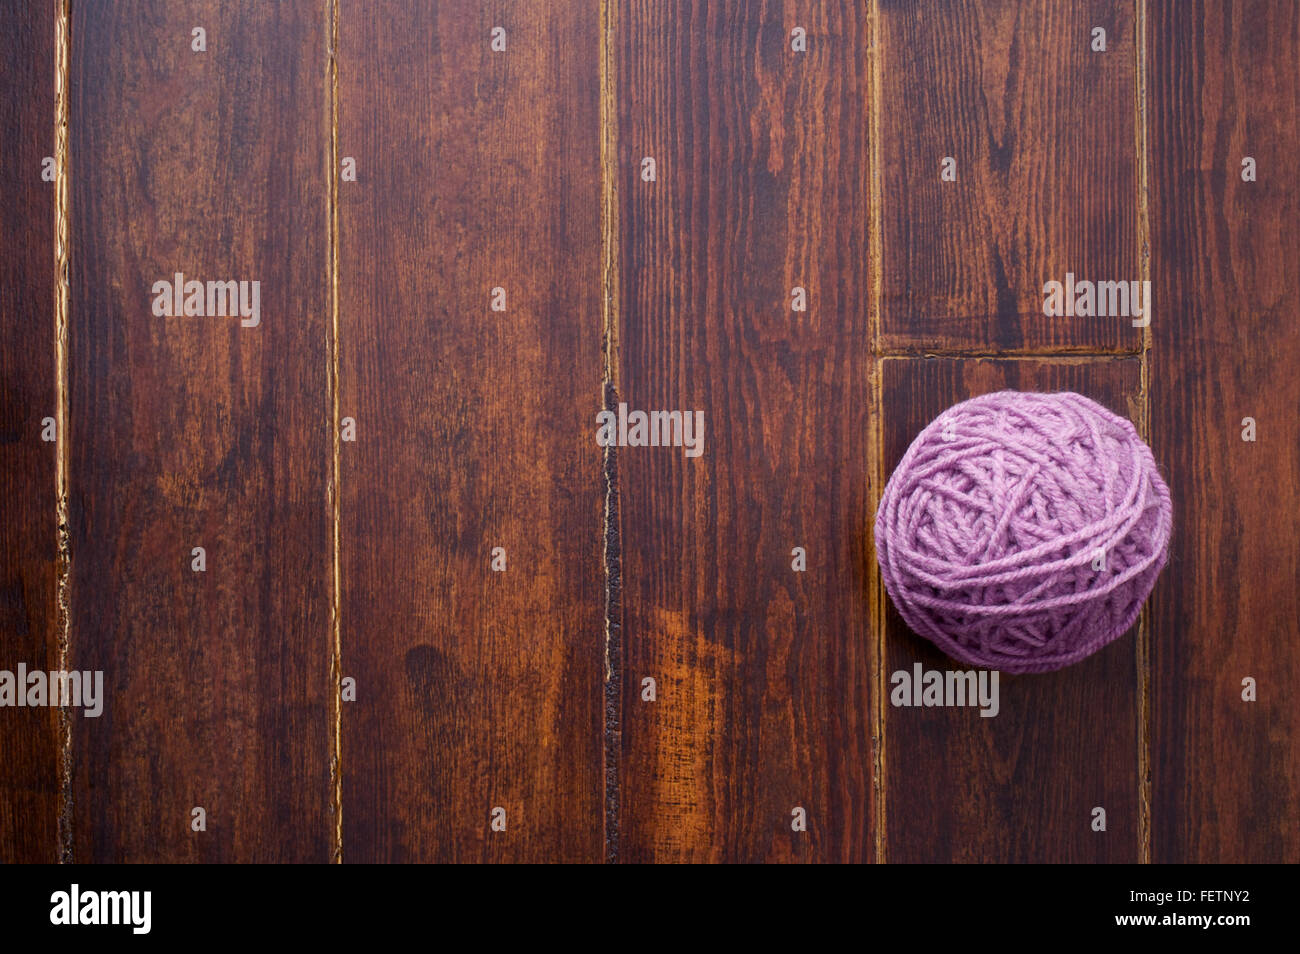 Lilac skein over wooden brown striped table - Stock Image